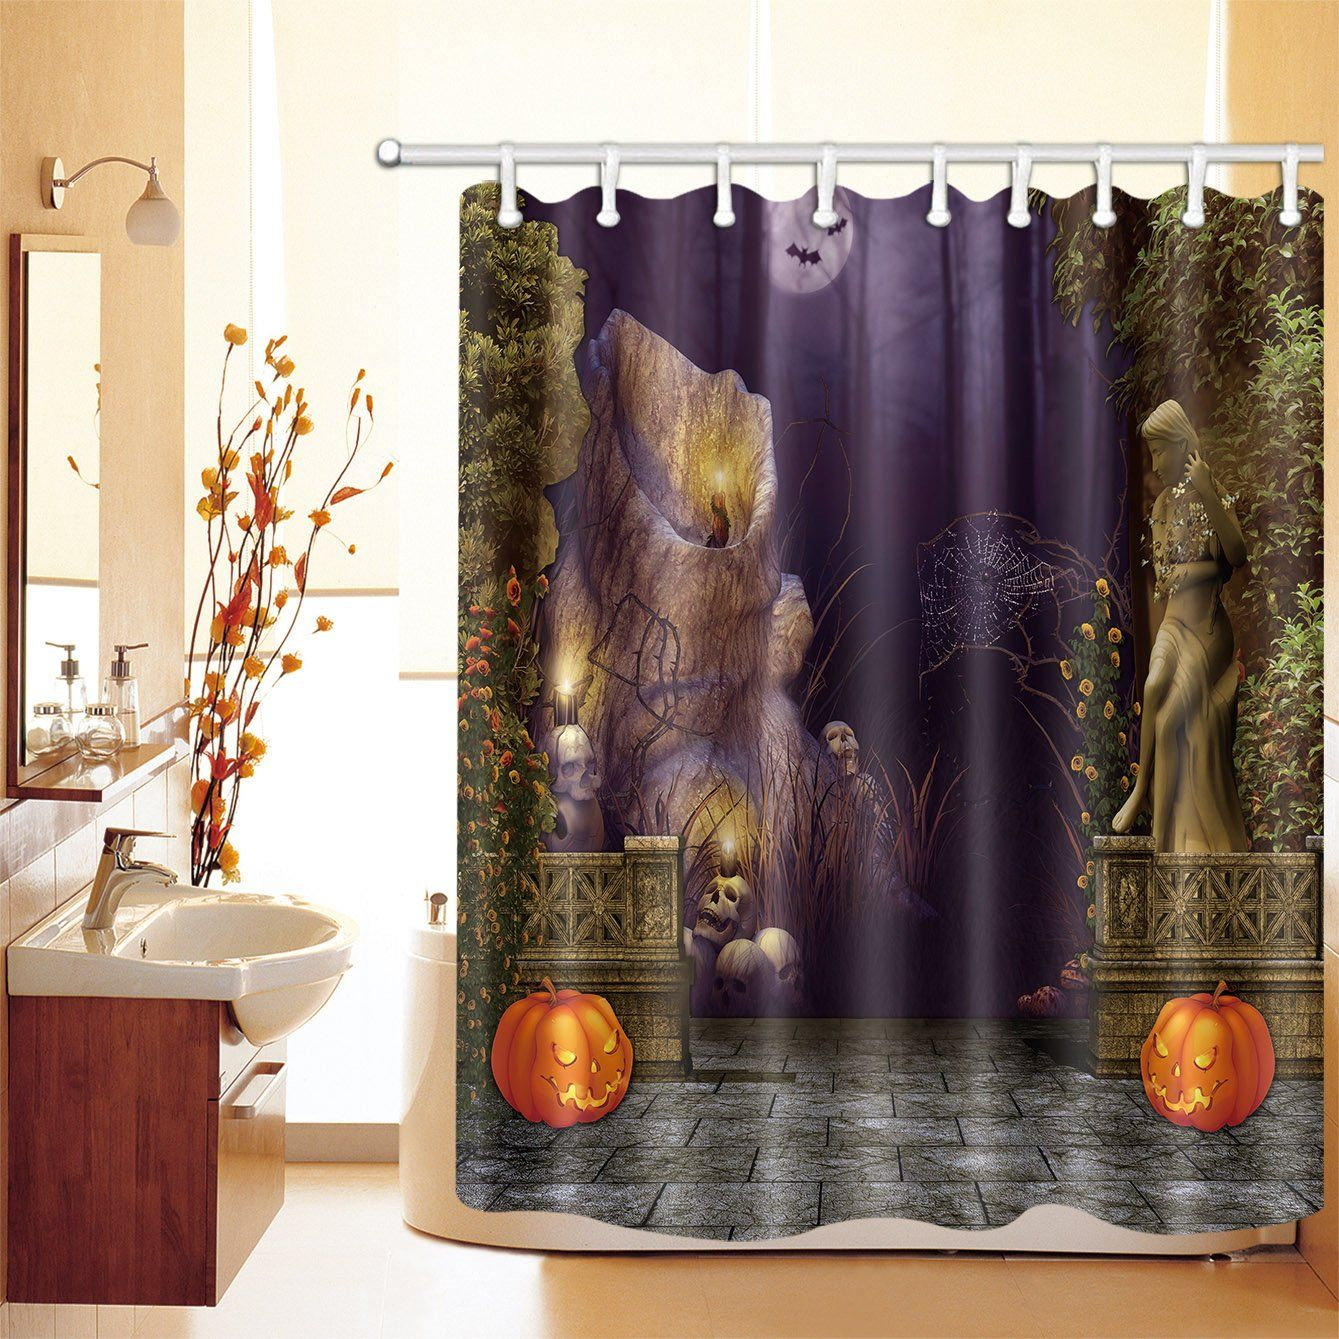 Lb Spooky Place Skull Spider Web Pumpkin Shower Curtain Shower